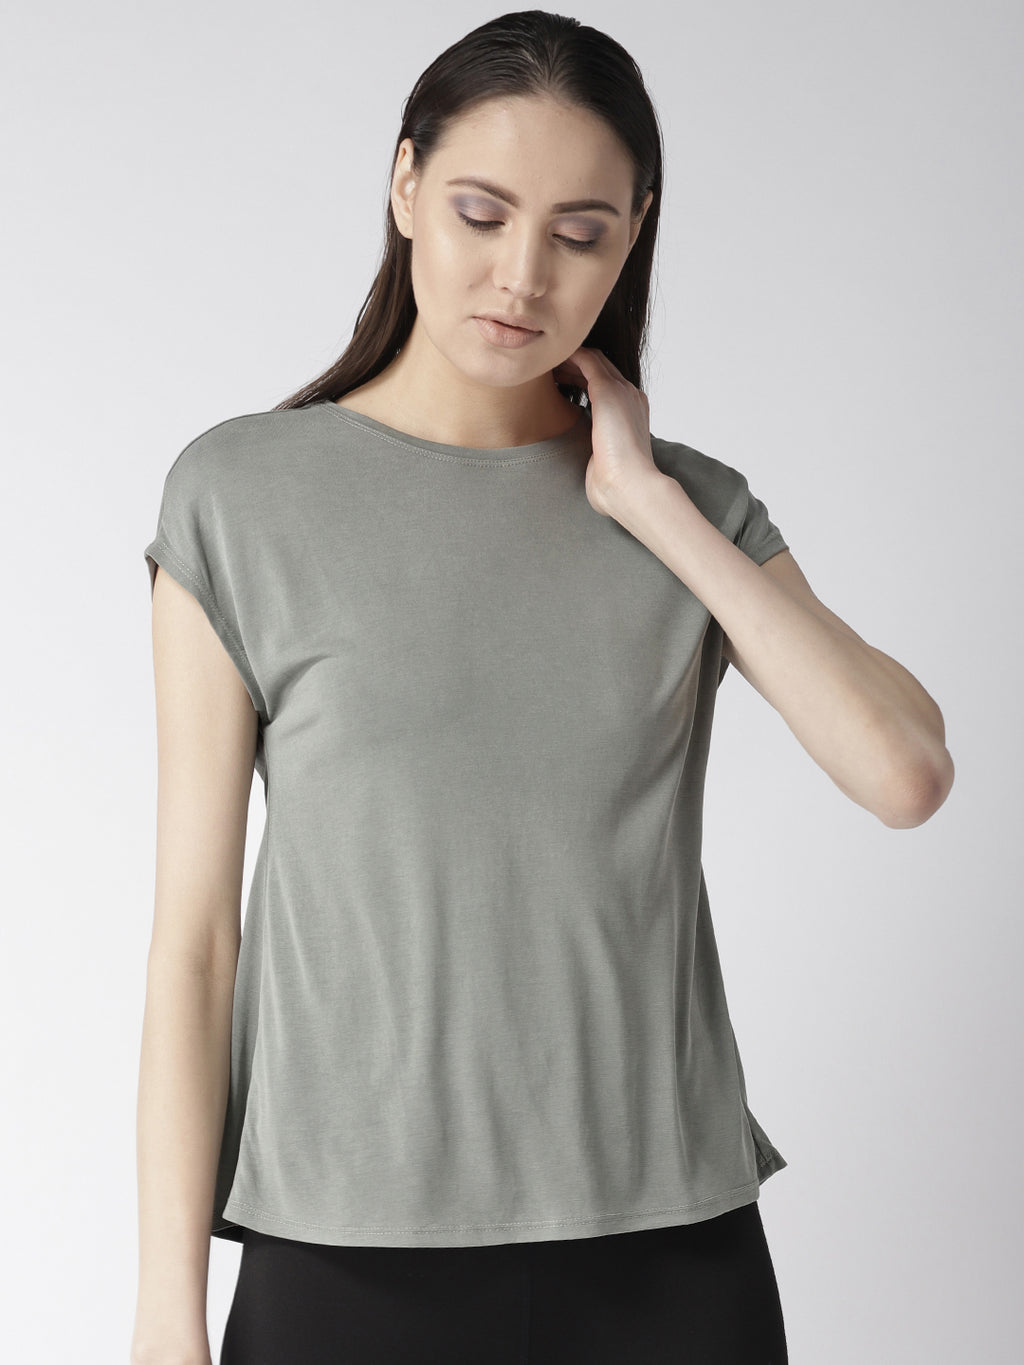 Fitkin Relaxed Fit Yoga Back Tie Top